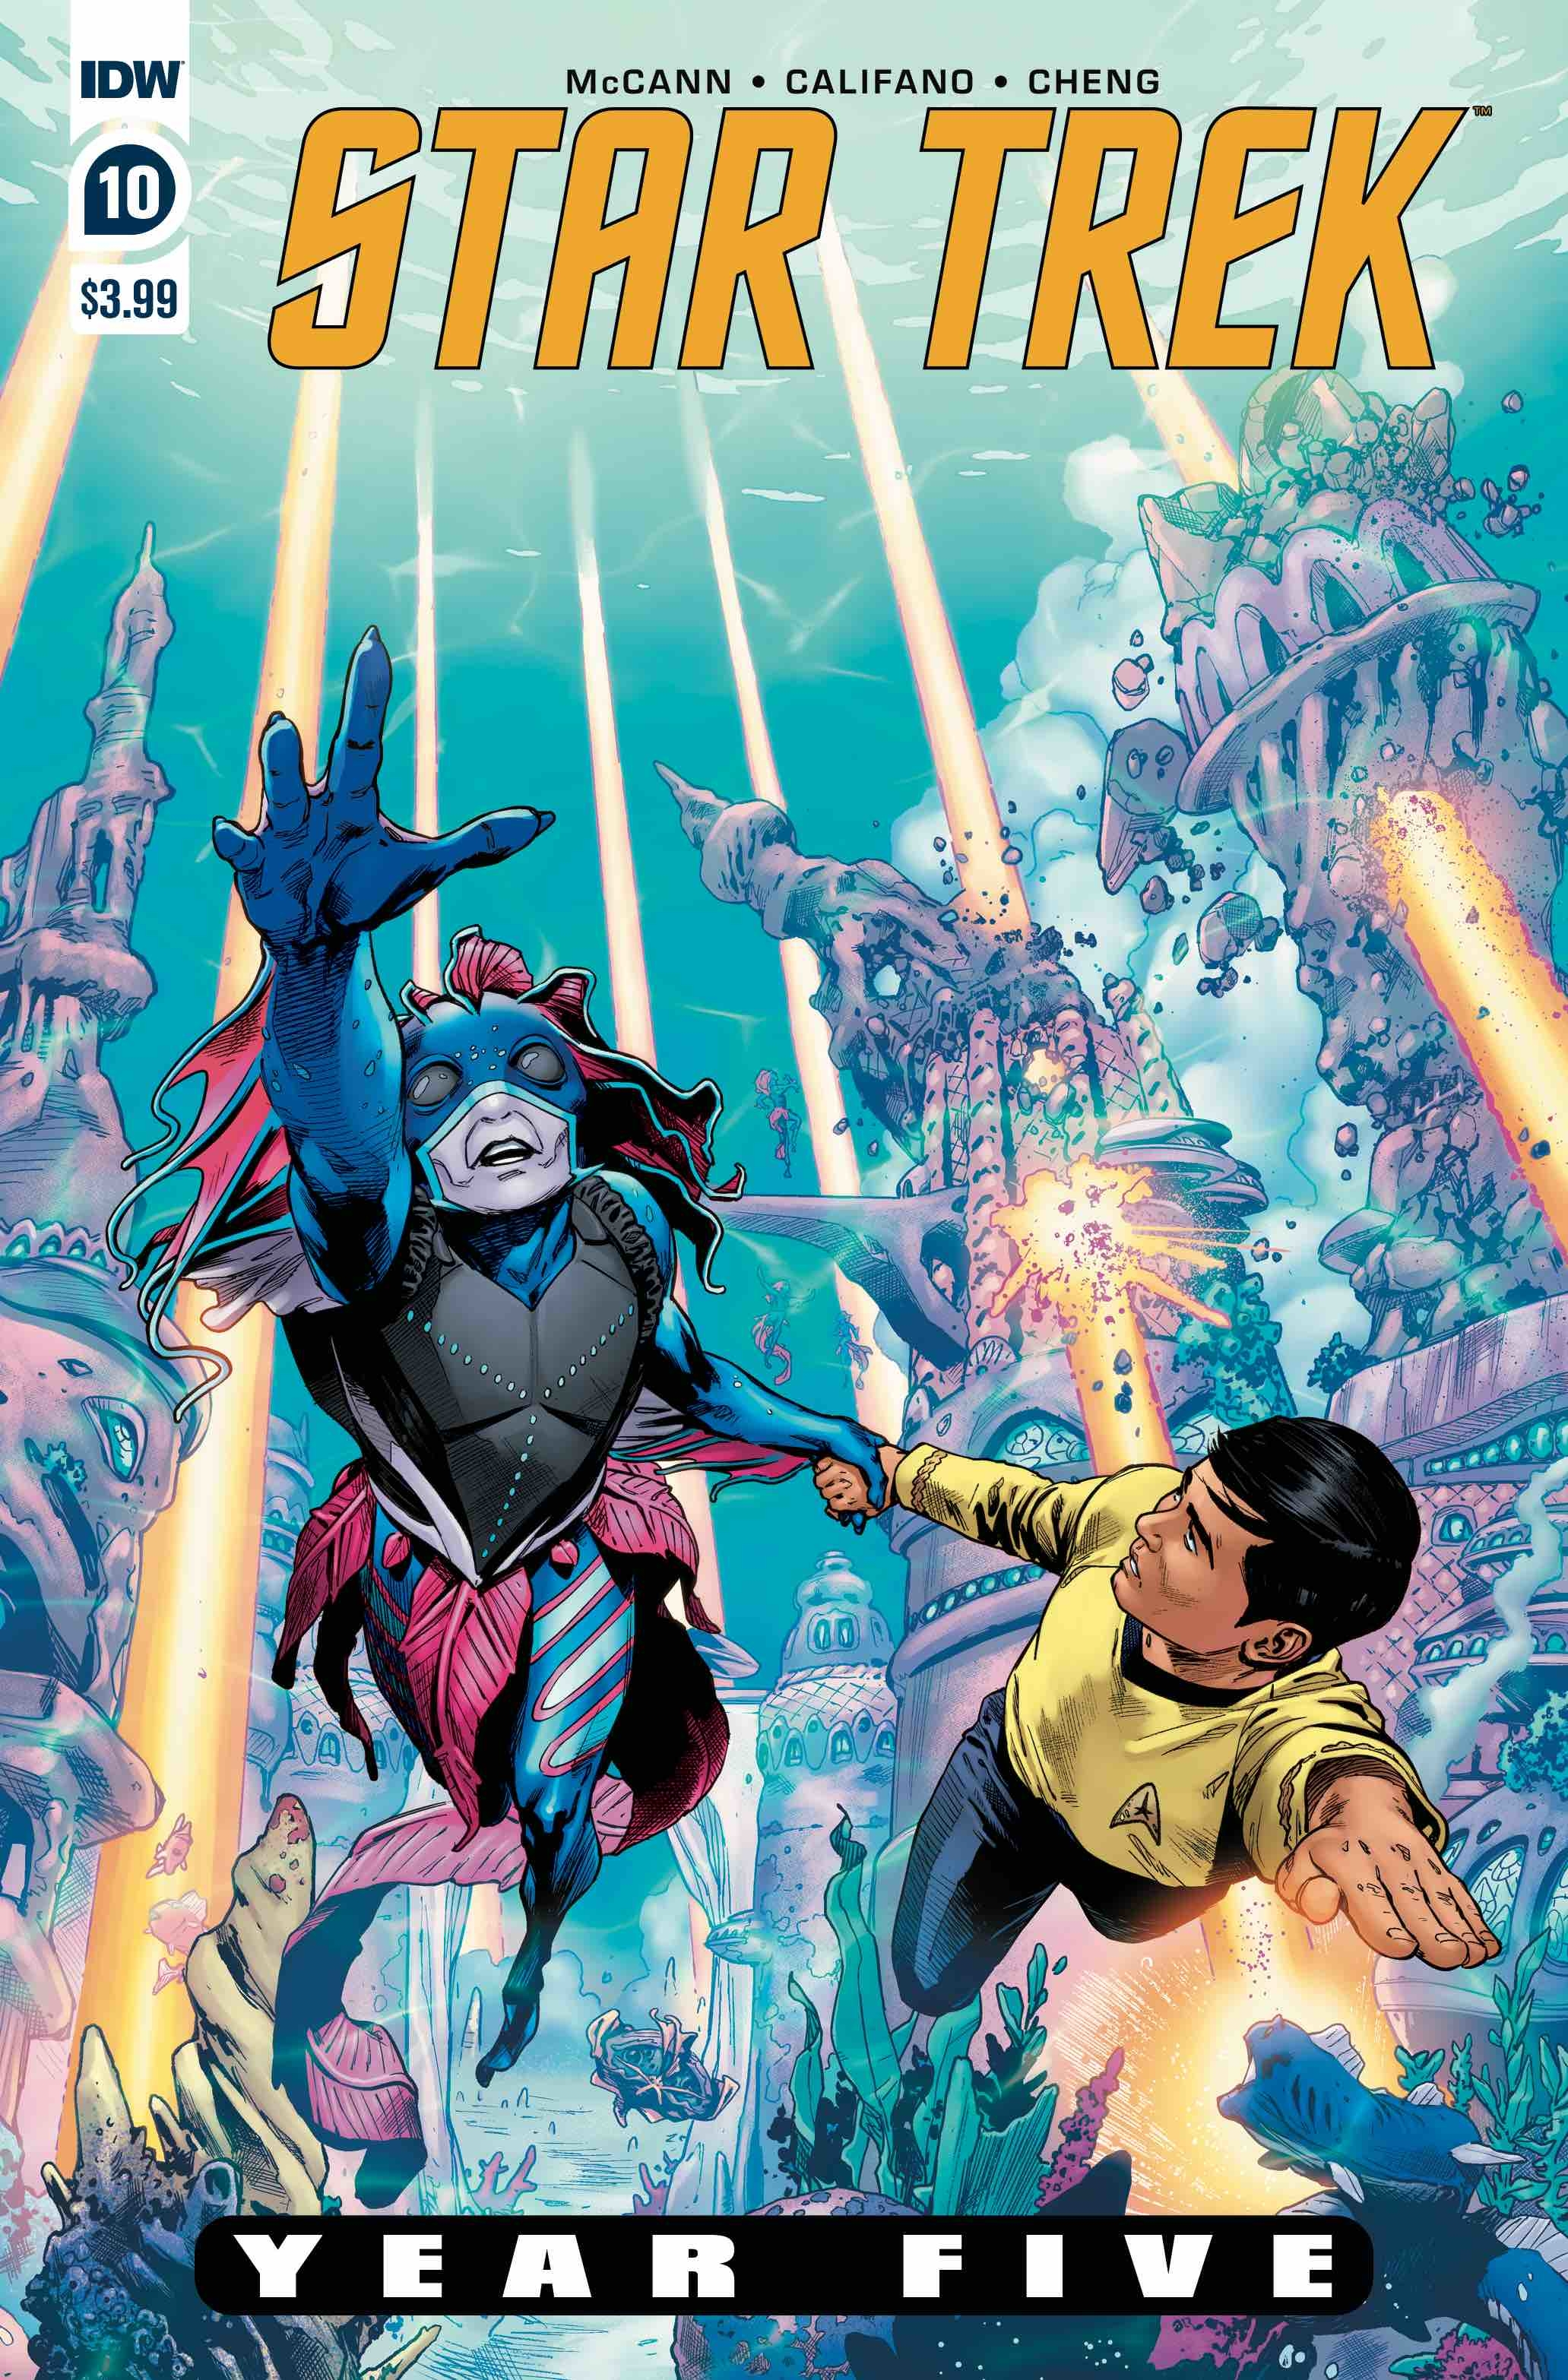 STAR TREK YEAR FIVE #10 CVR A THOMPSON